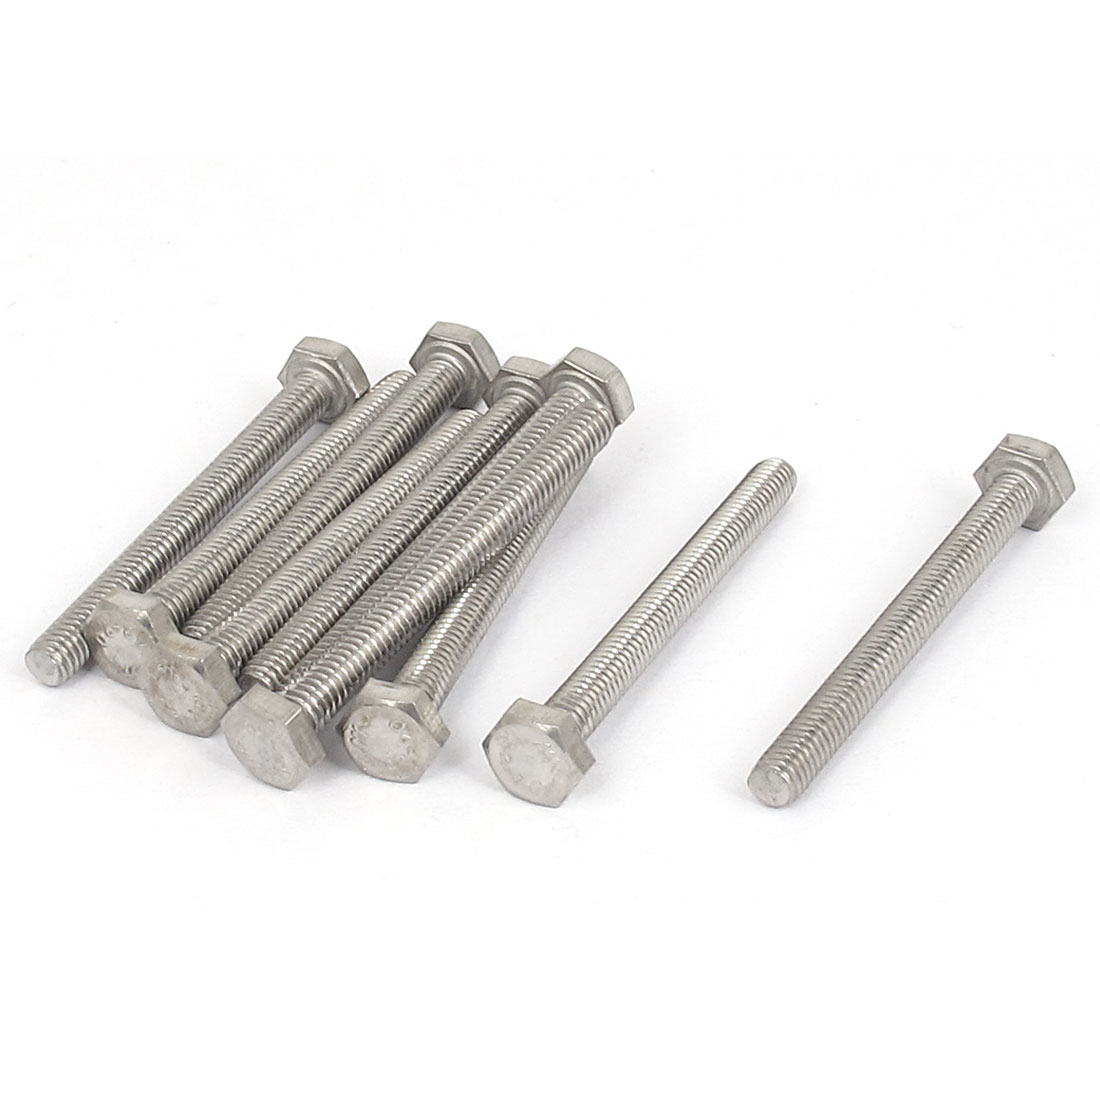 M4x40mm Thread 304 Stainless Steel Hex Hexagon Head Screw Bolt 10pcs